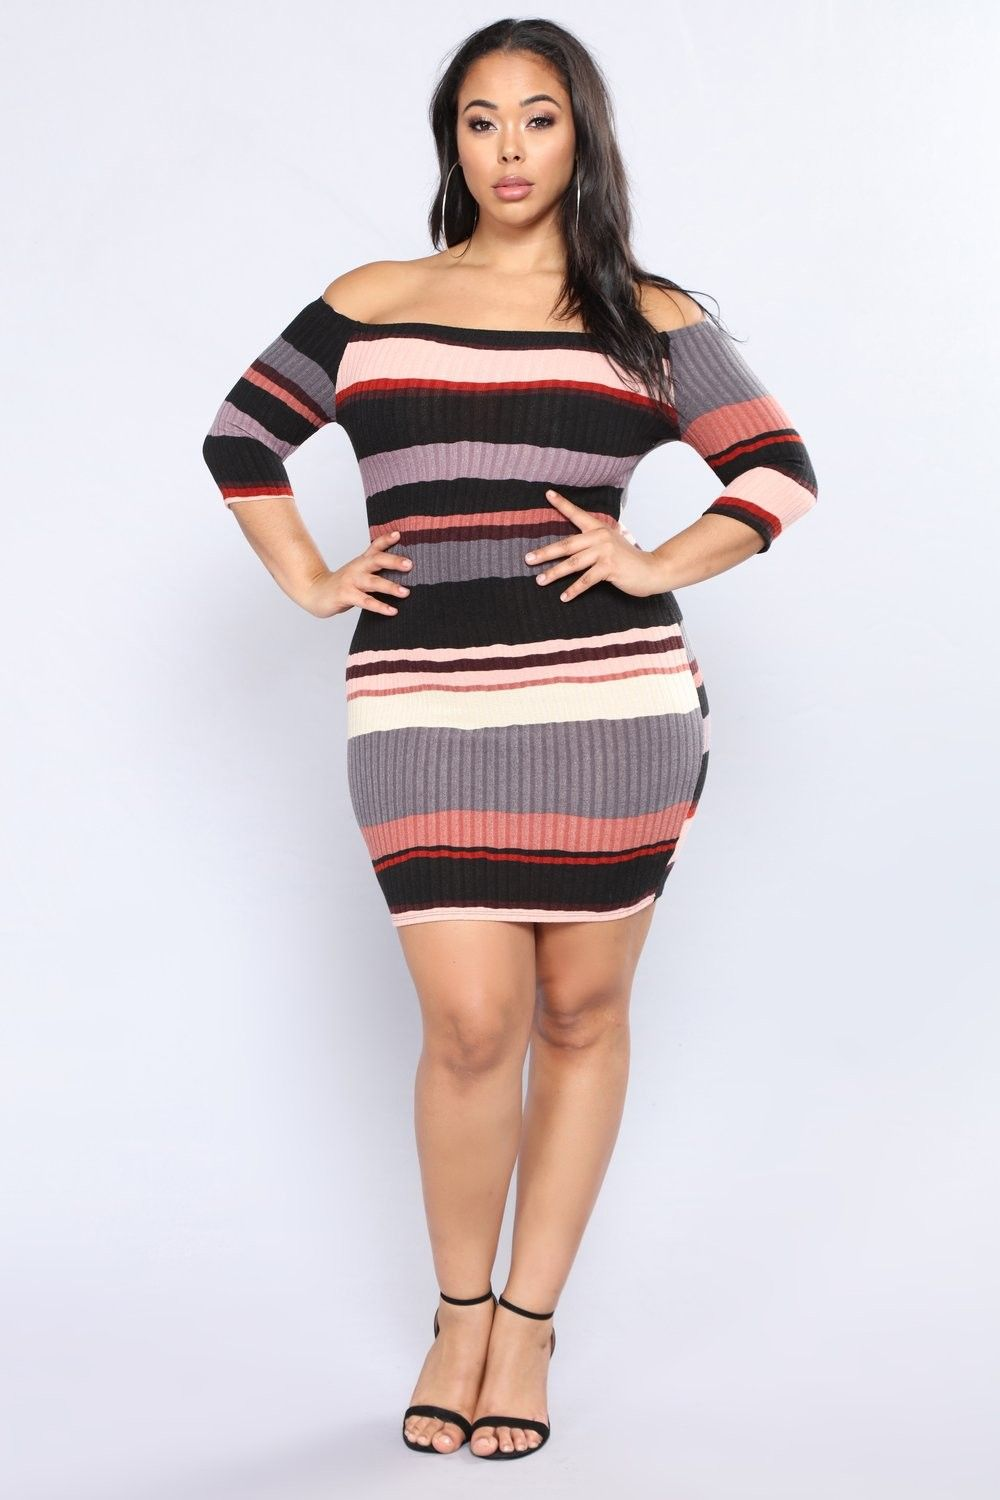 abe71cda3 Plus Size Hold Him Tight Striped Dress - Pink Multi  24.99  fashion  ootd